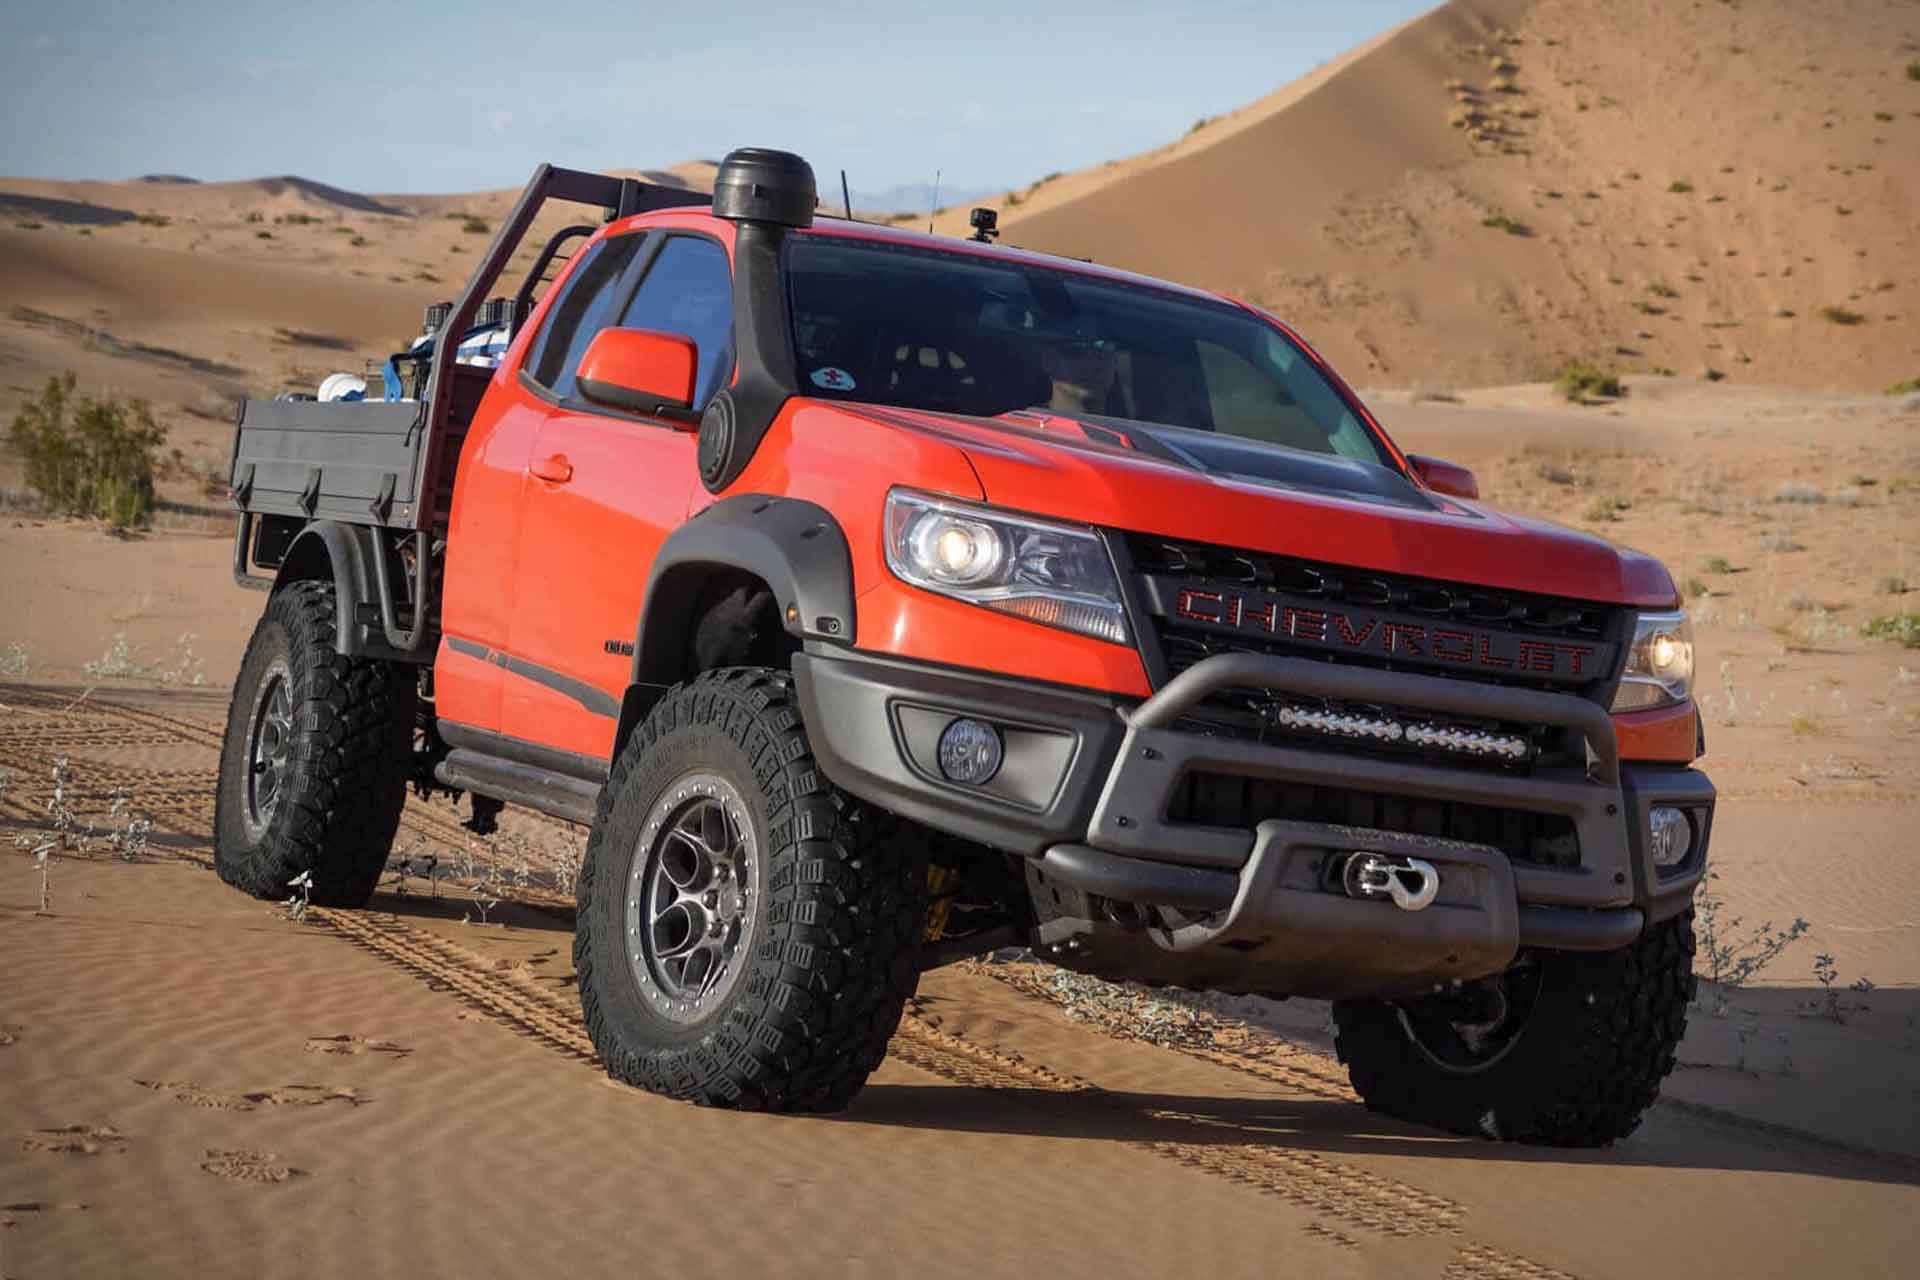 2019 Chevy Colorado Zr2 Bison Tray Bed Concept Truck Uncrate